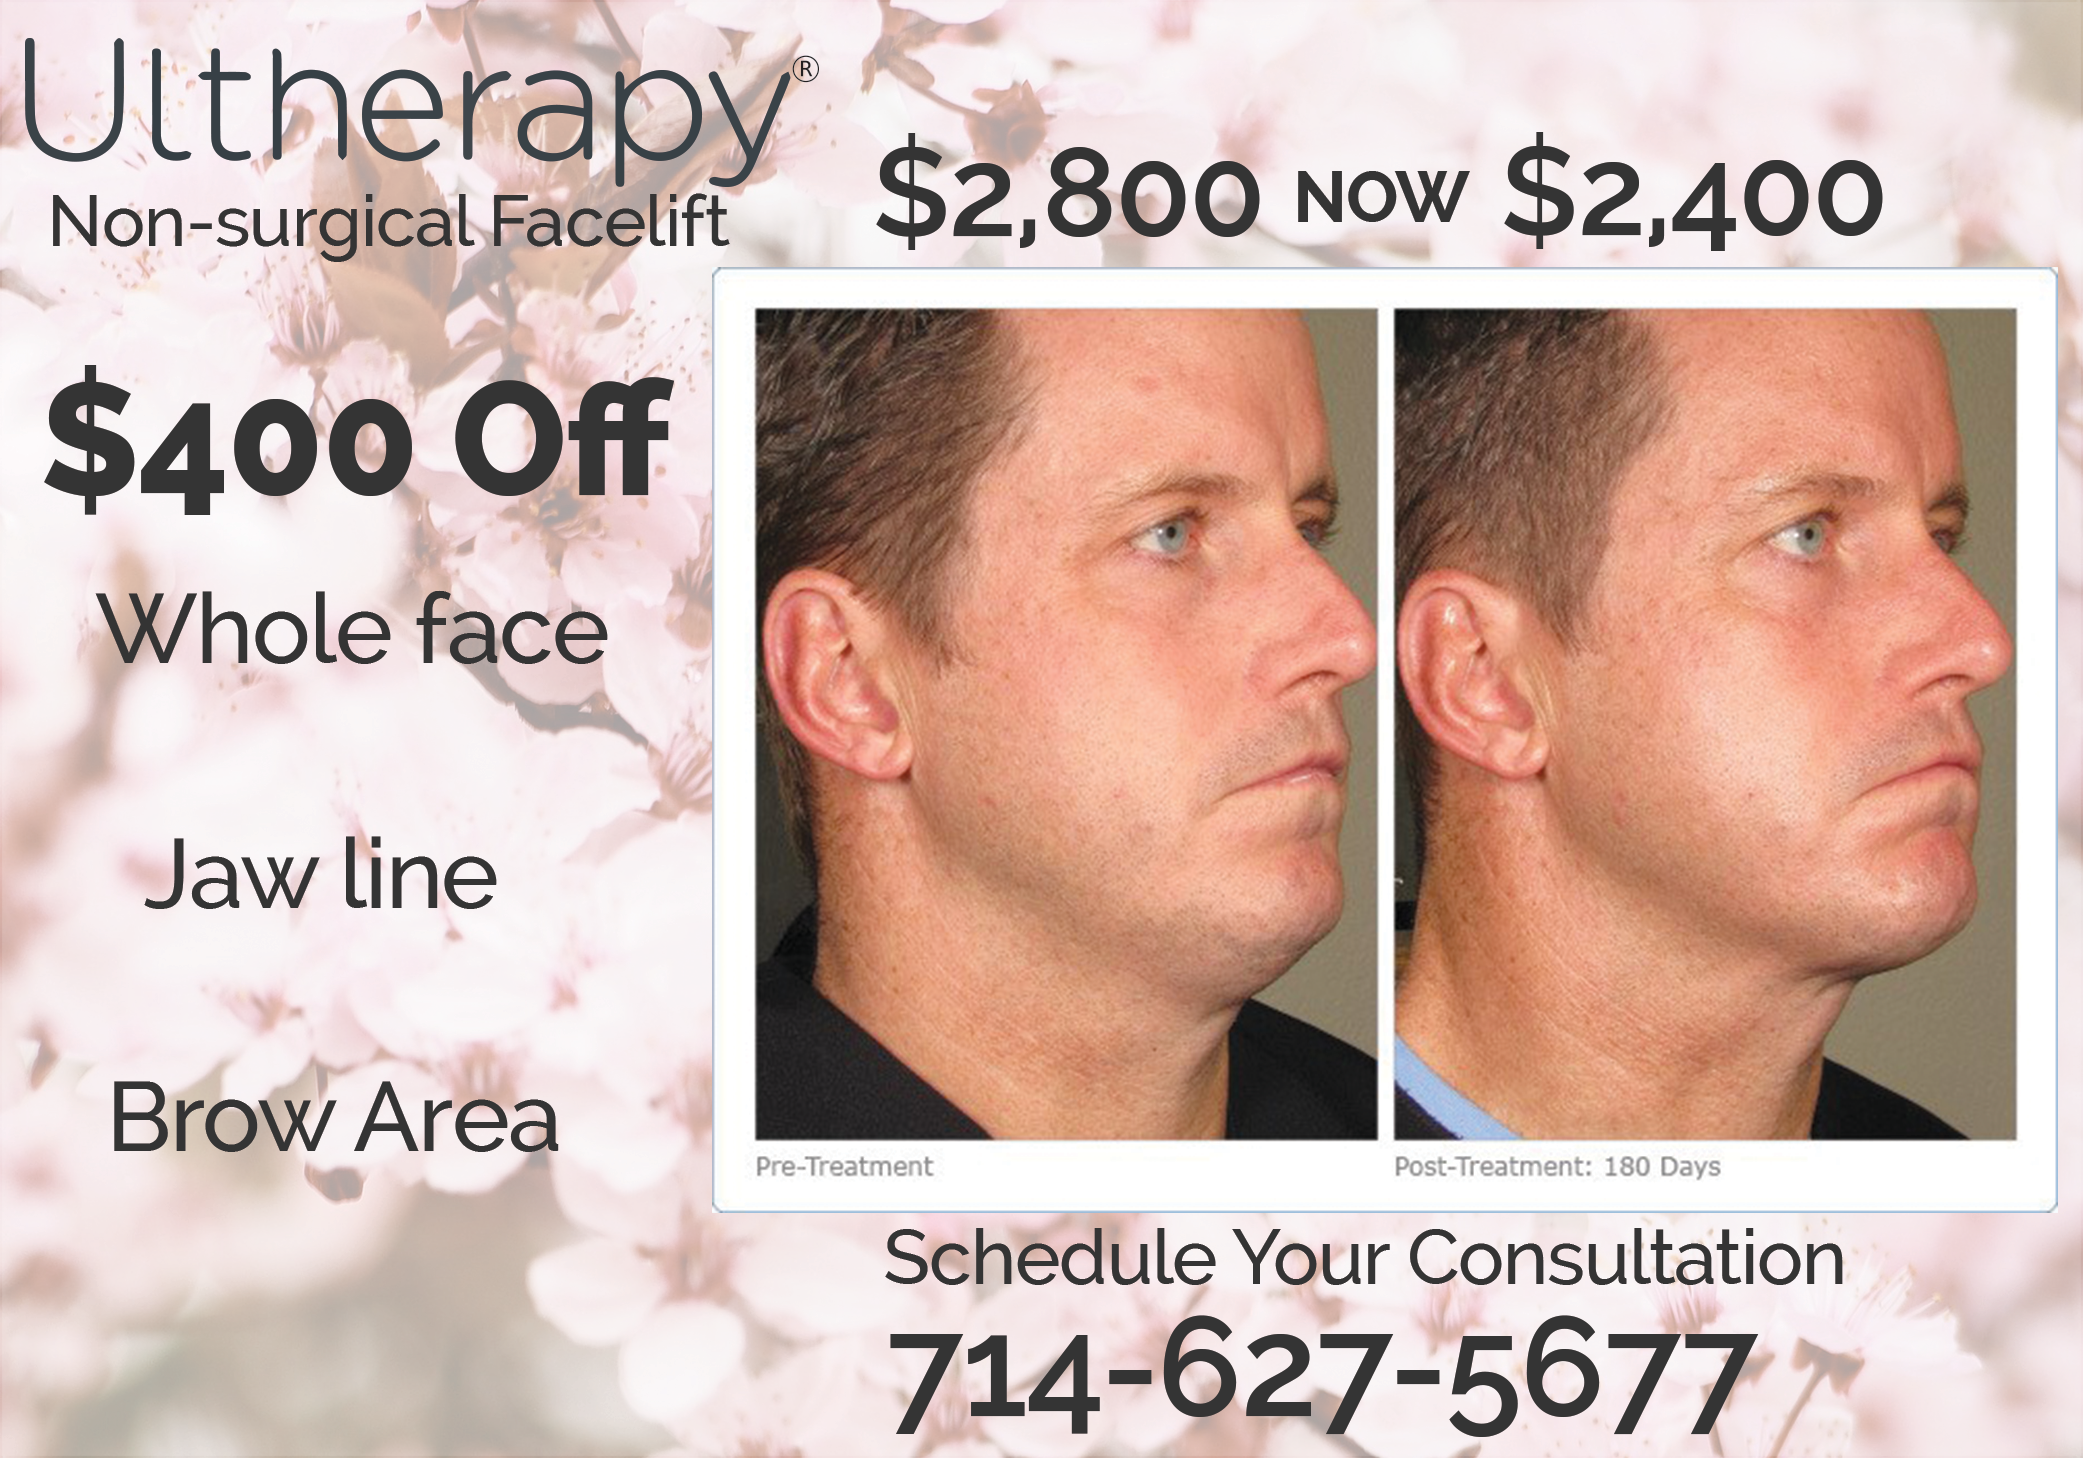 Clinical Aesthetics Ultherapy